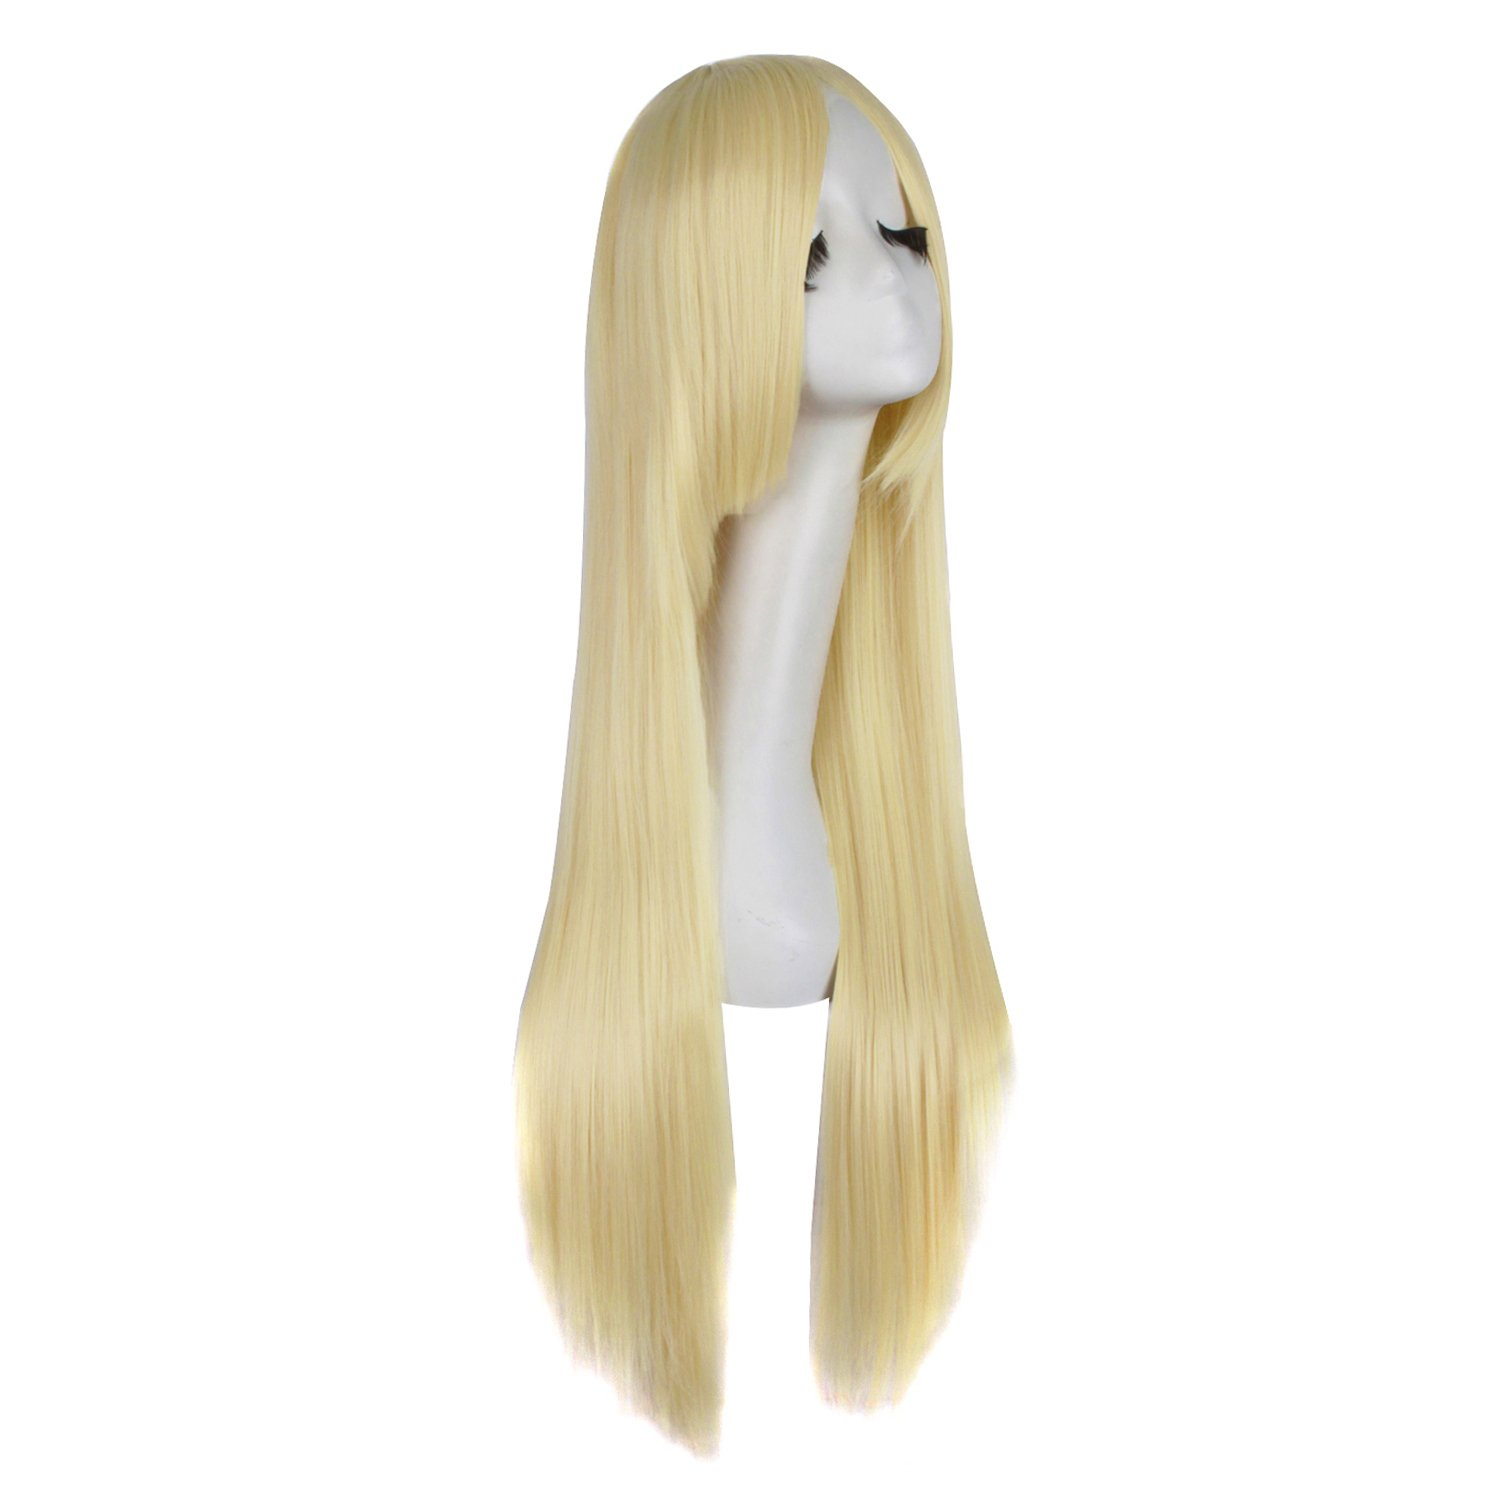 MapofBeauty 32 80cm Long Straight Anime Costume Cosplay Wig Party Wig Dark Brown